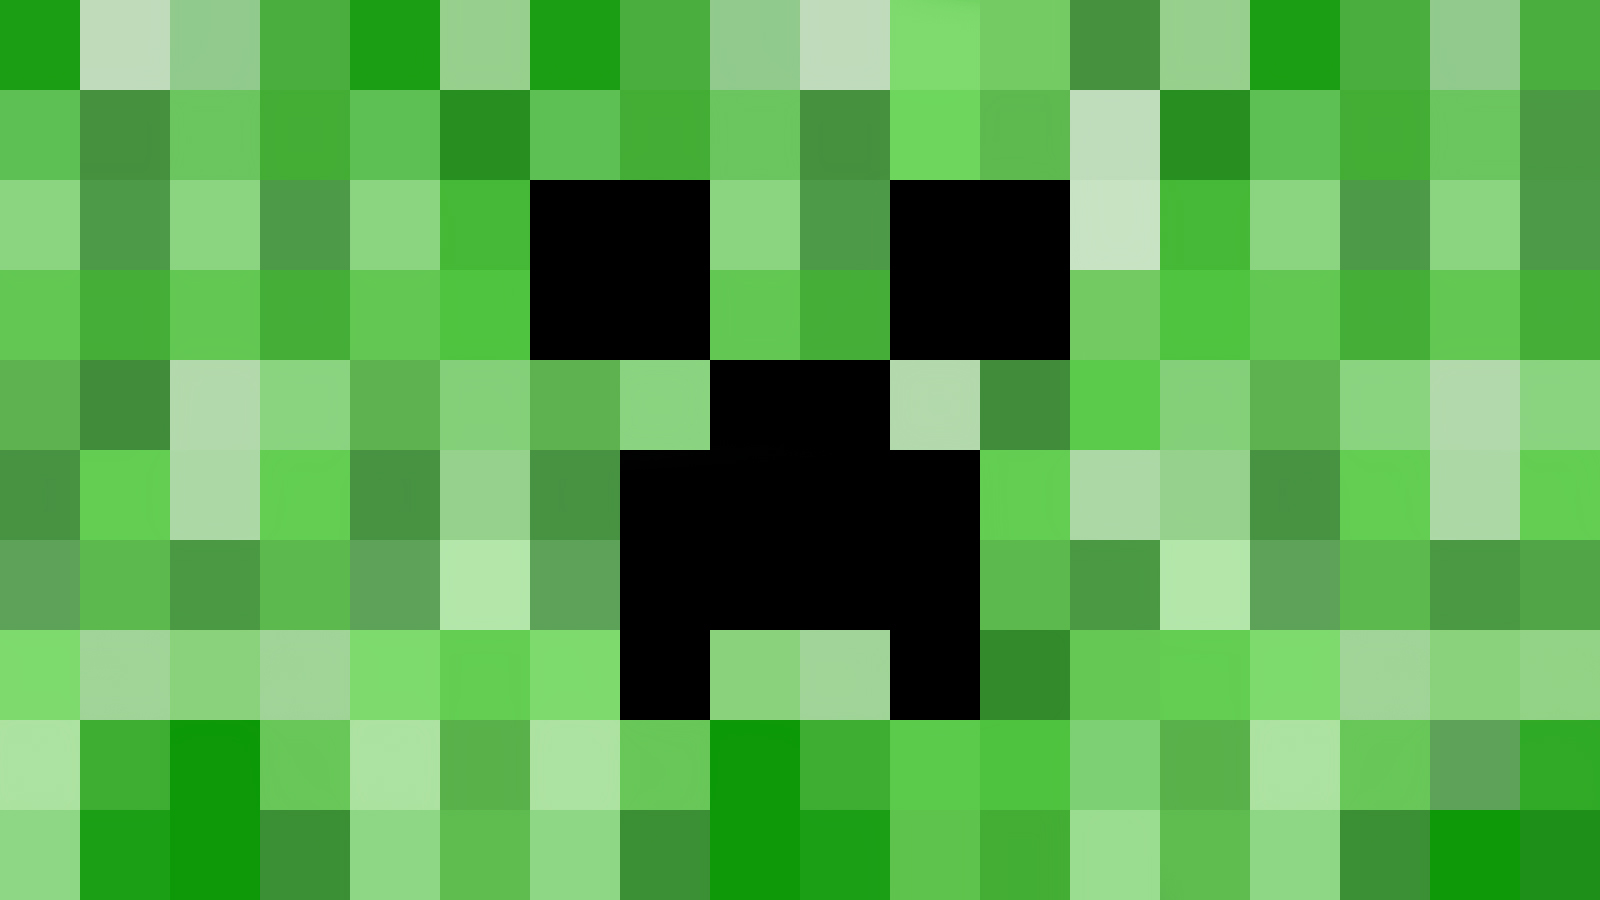 minecraft creeper papercraft printable template Create your own 1600x900